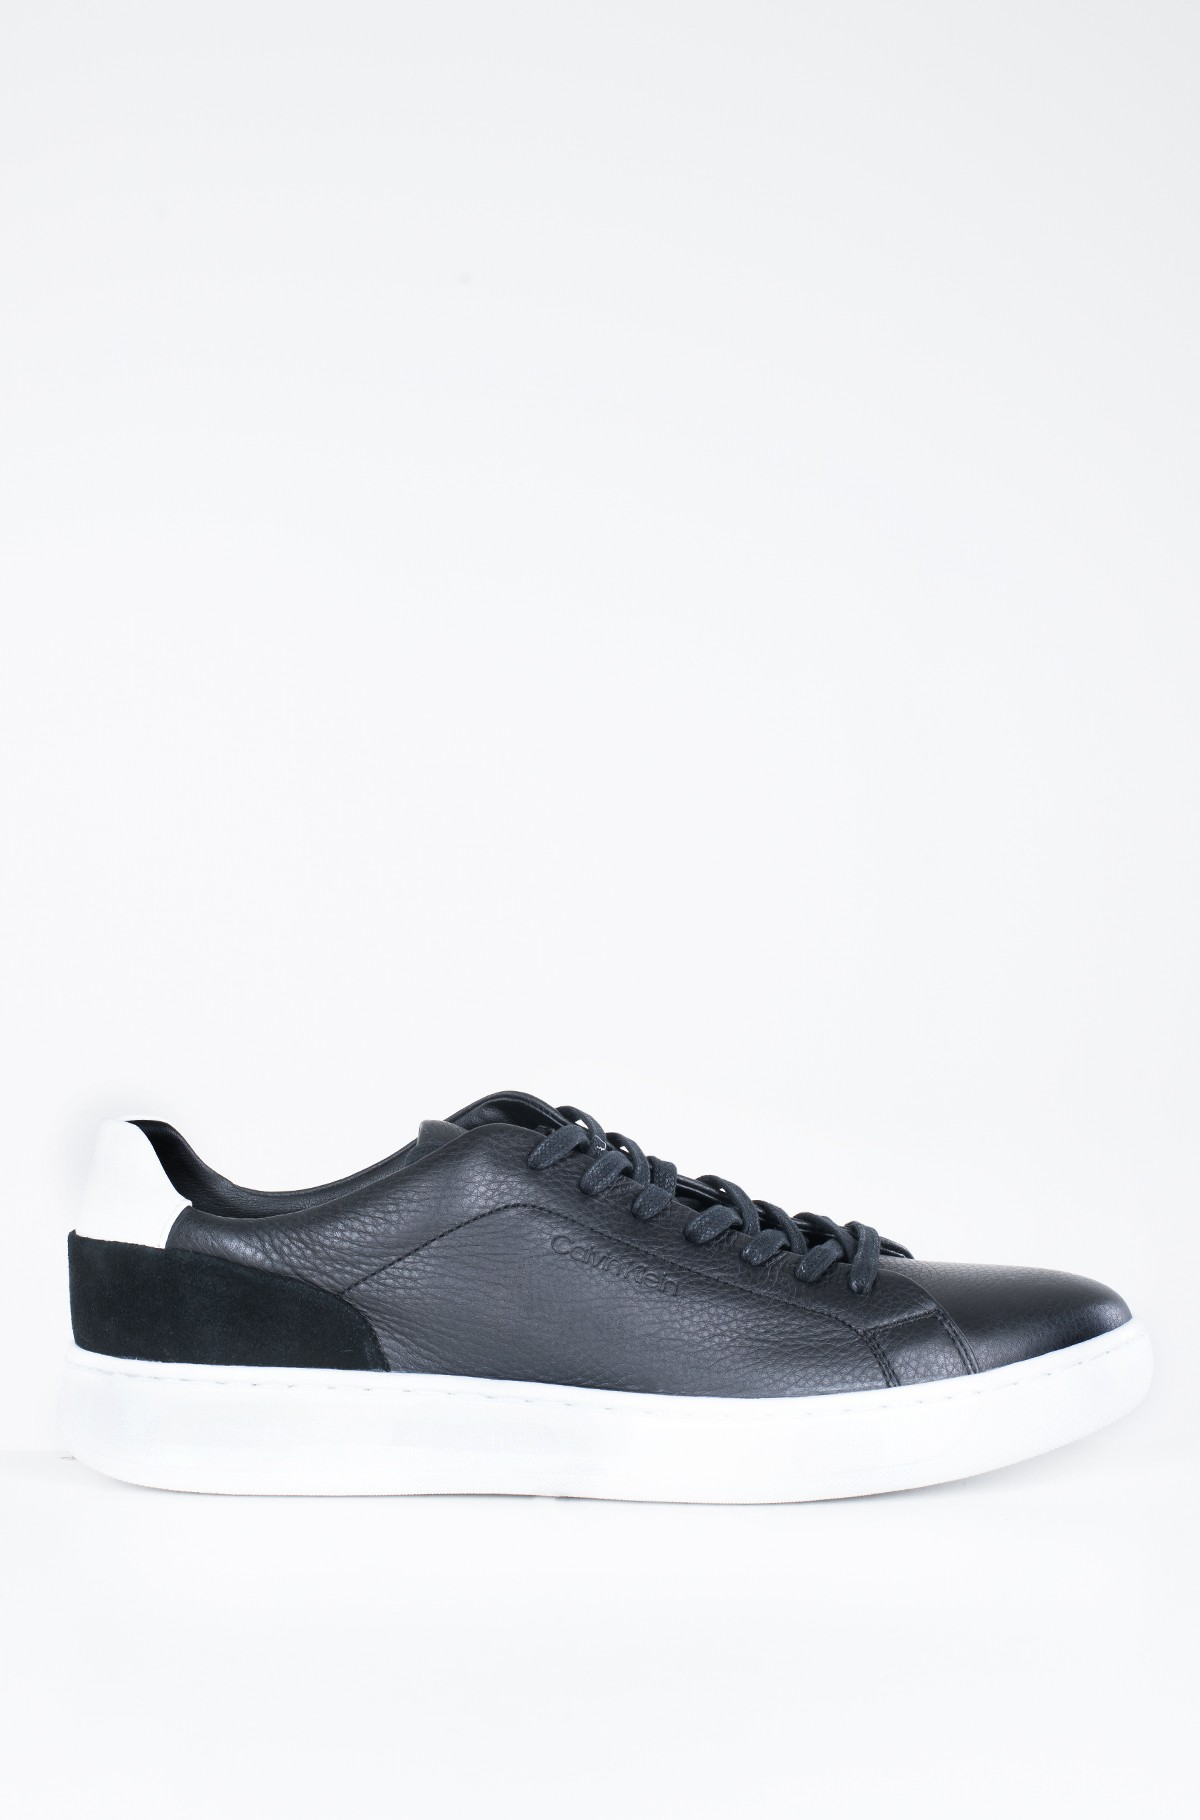 Sneakers FUEGO LOW TOP LACE UP-full-1